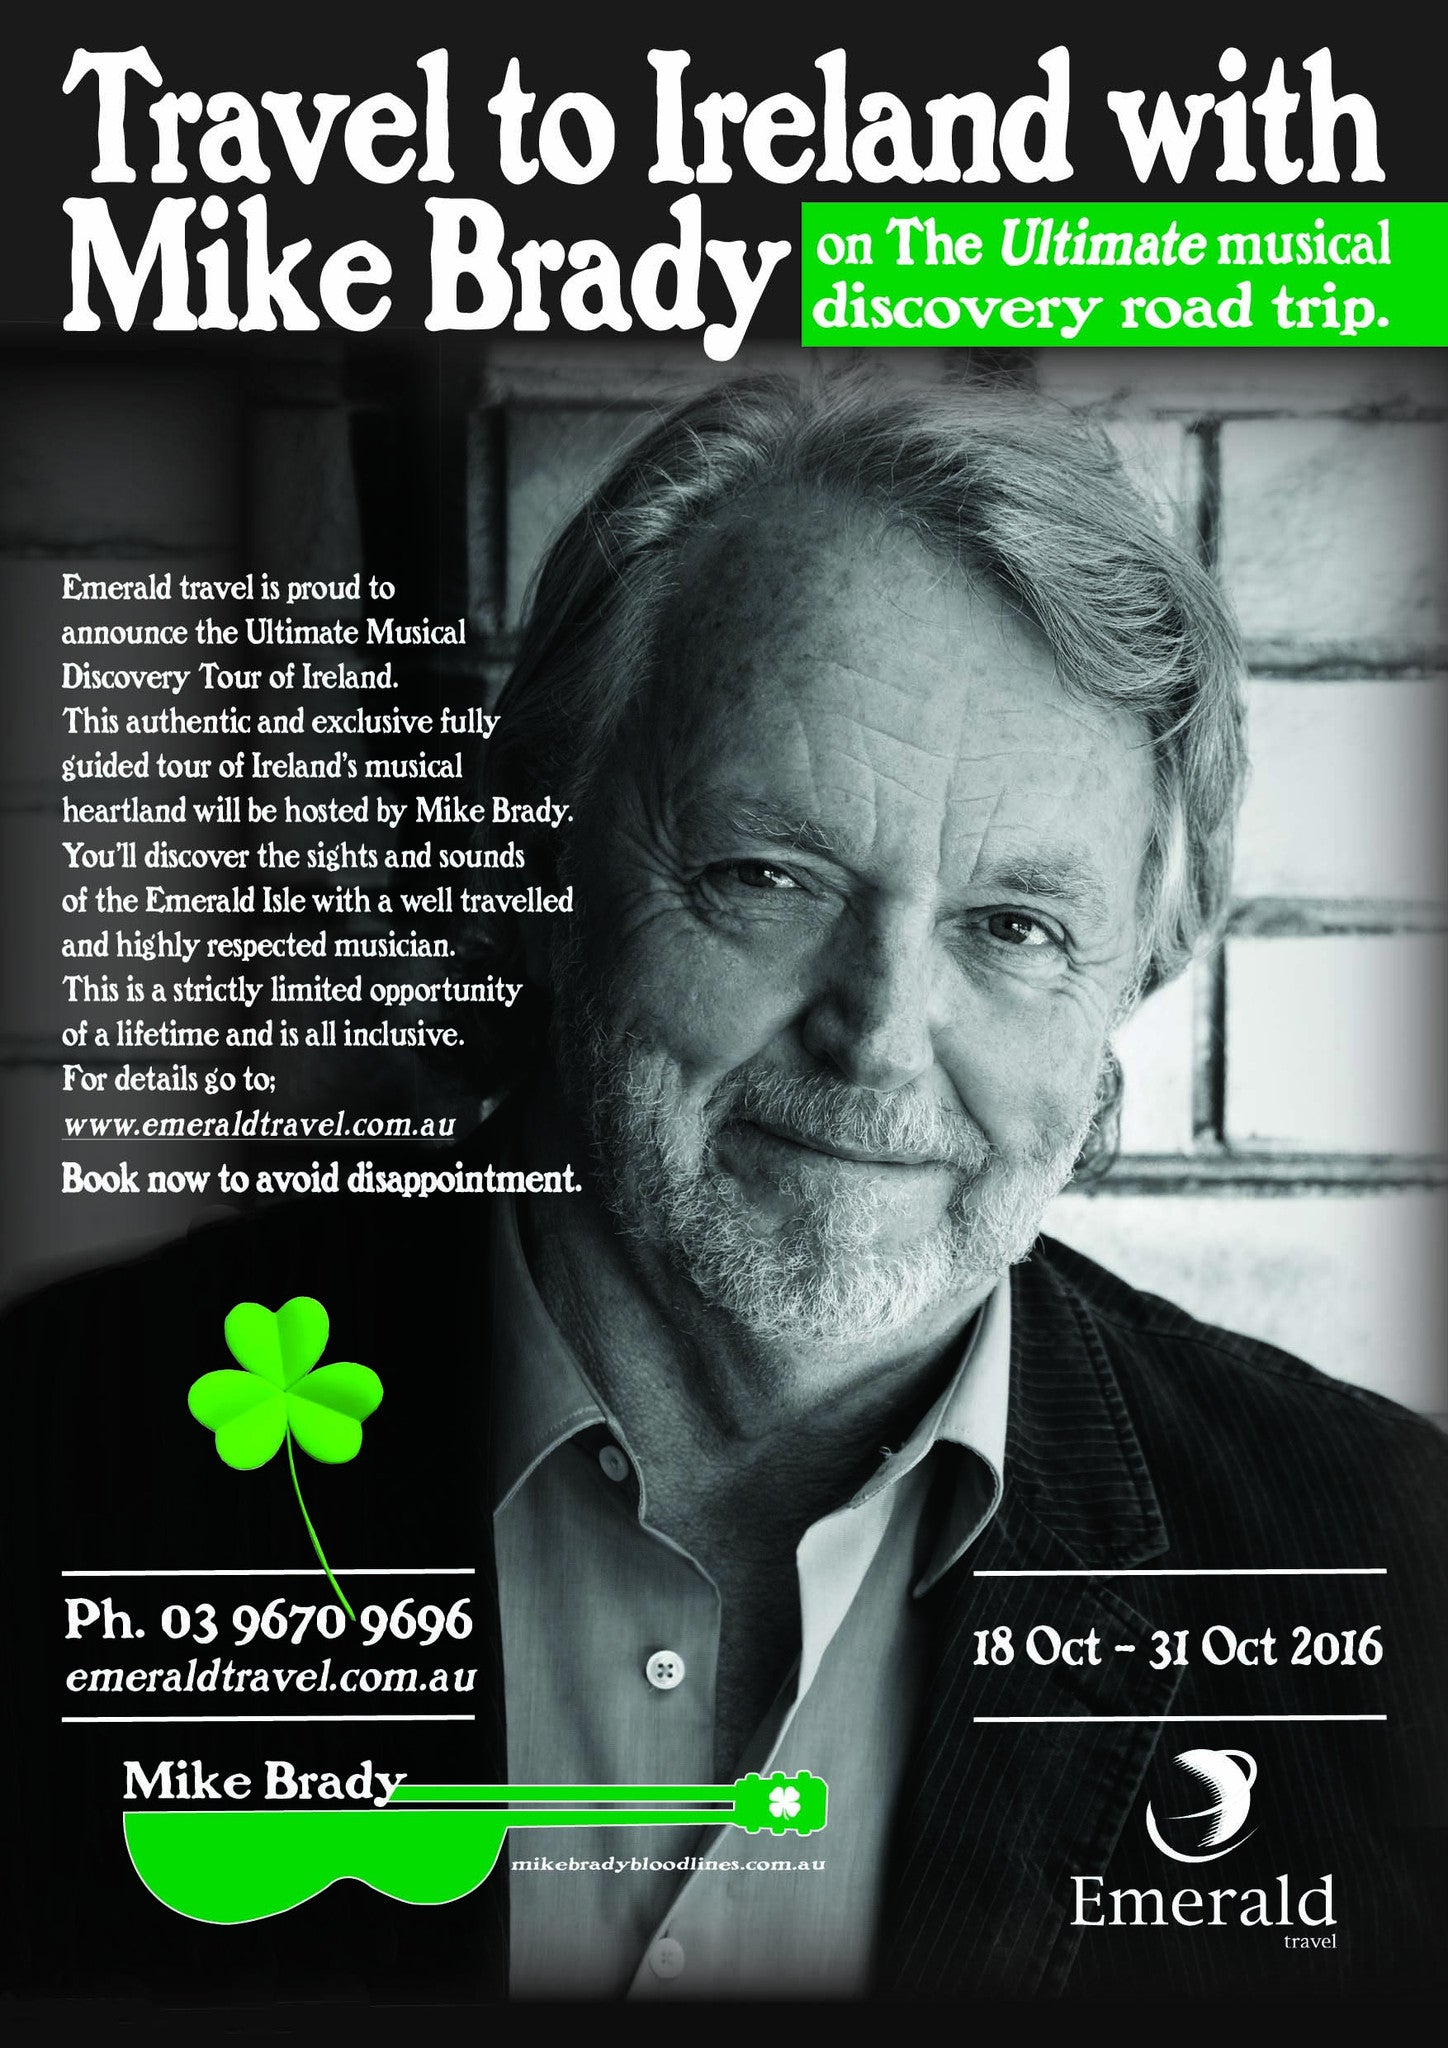 Travel to Ireland with Mike Brady - A Musical Road Trip